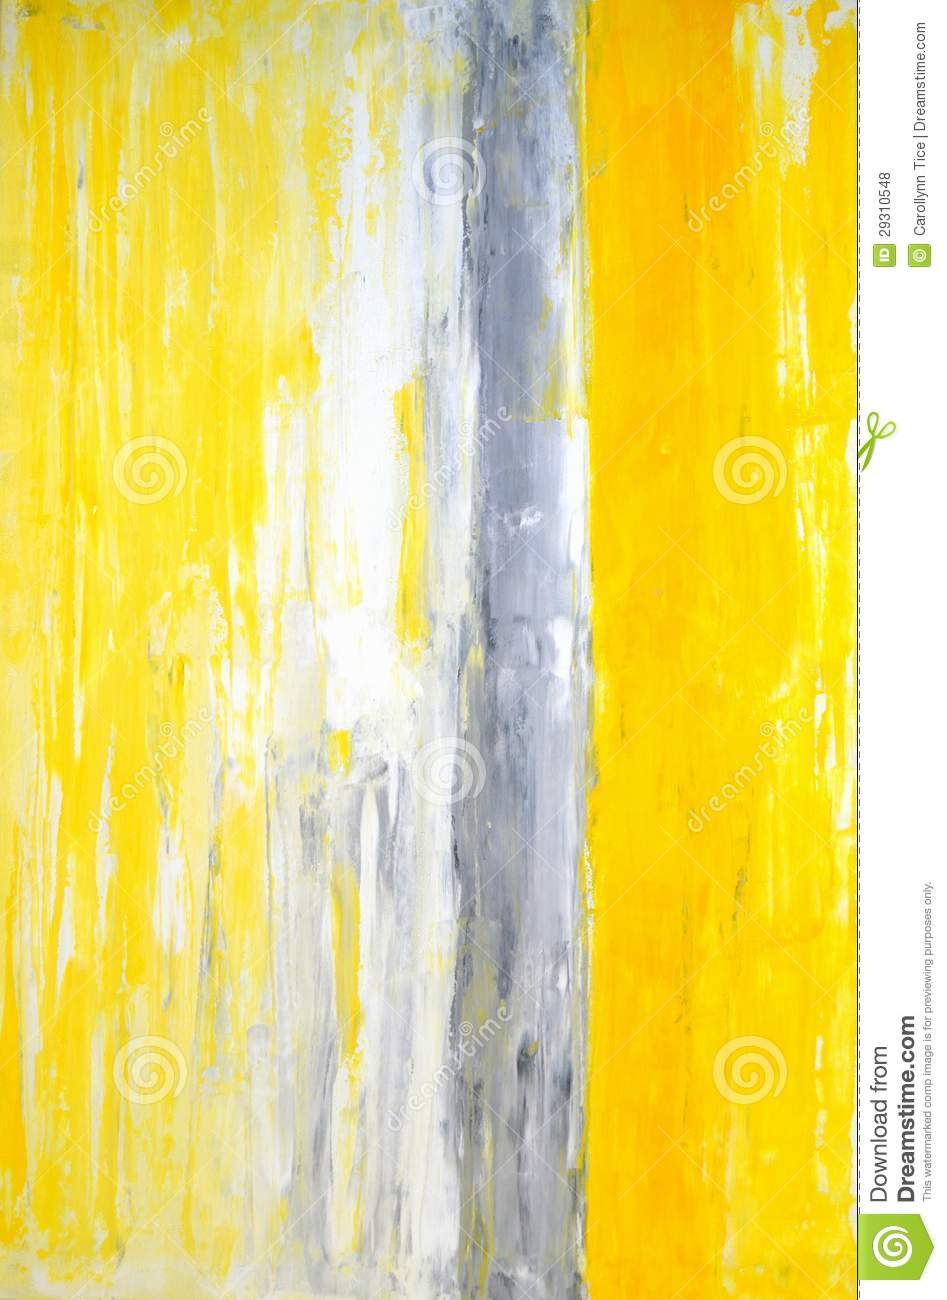 Grey And Yellow Abstract Art Painting Stock Photo - Image ...Yellow Abstract Painting